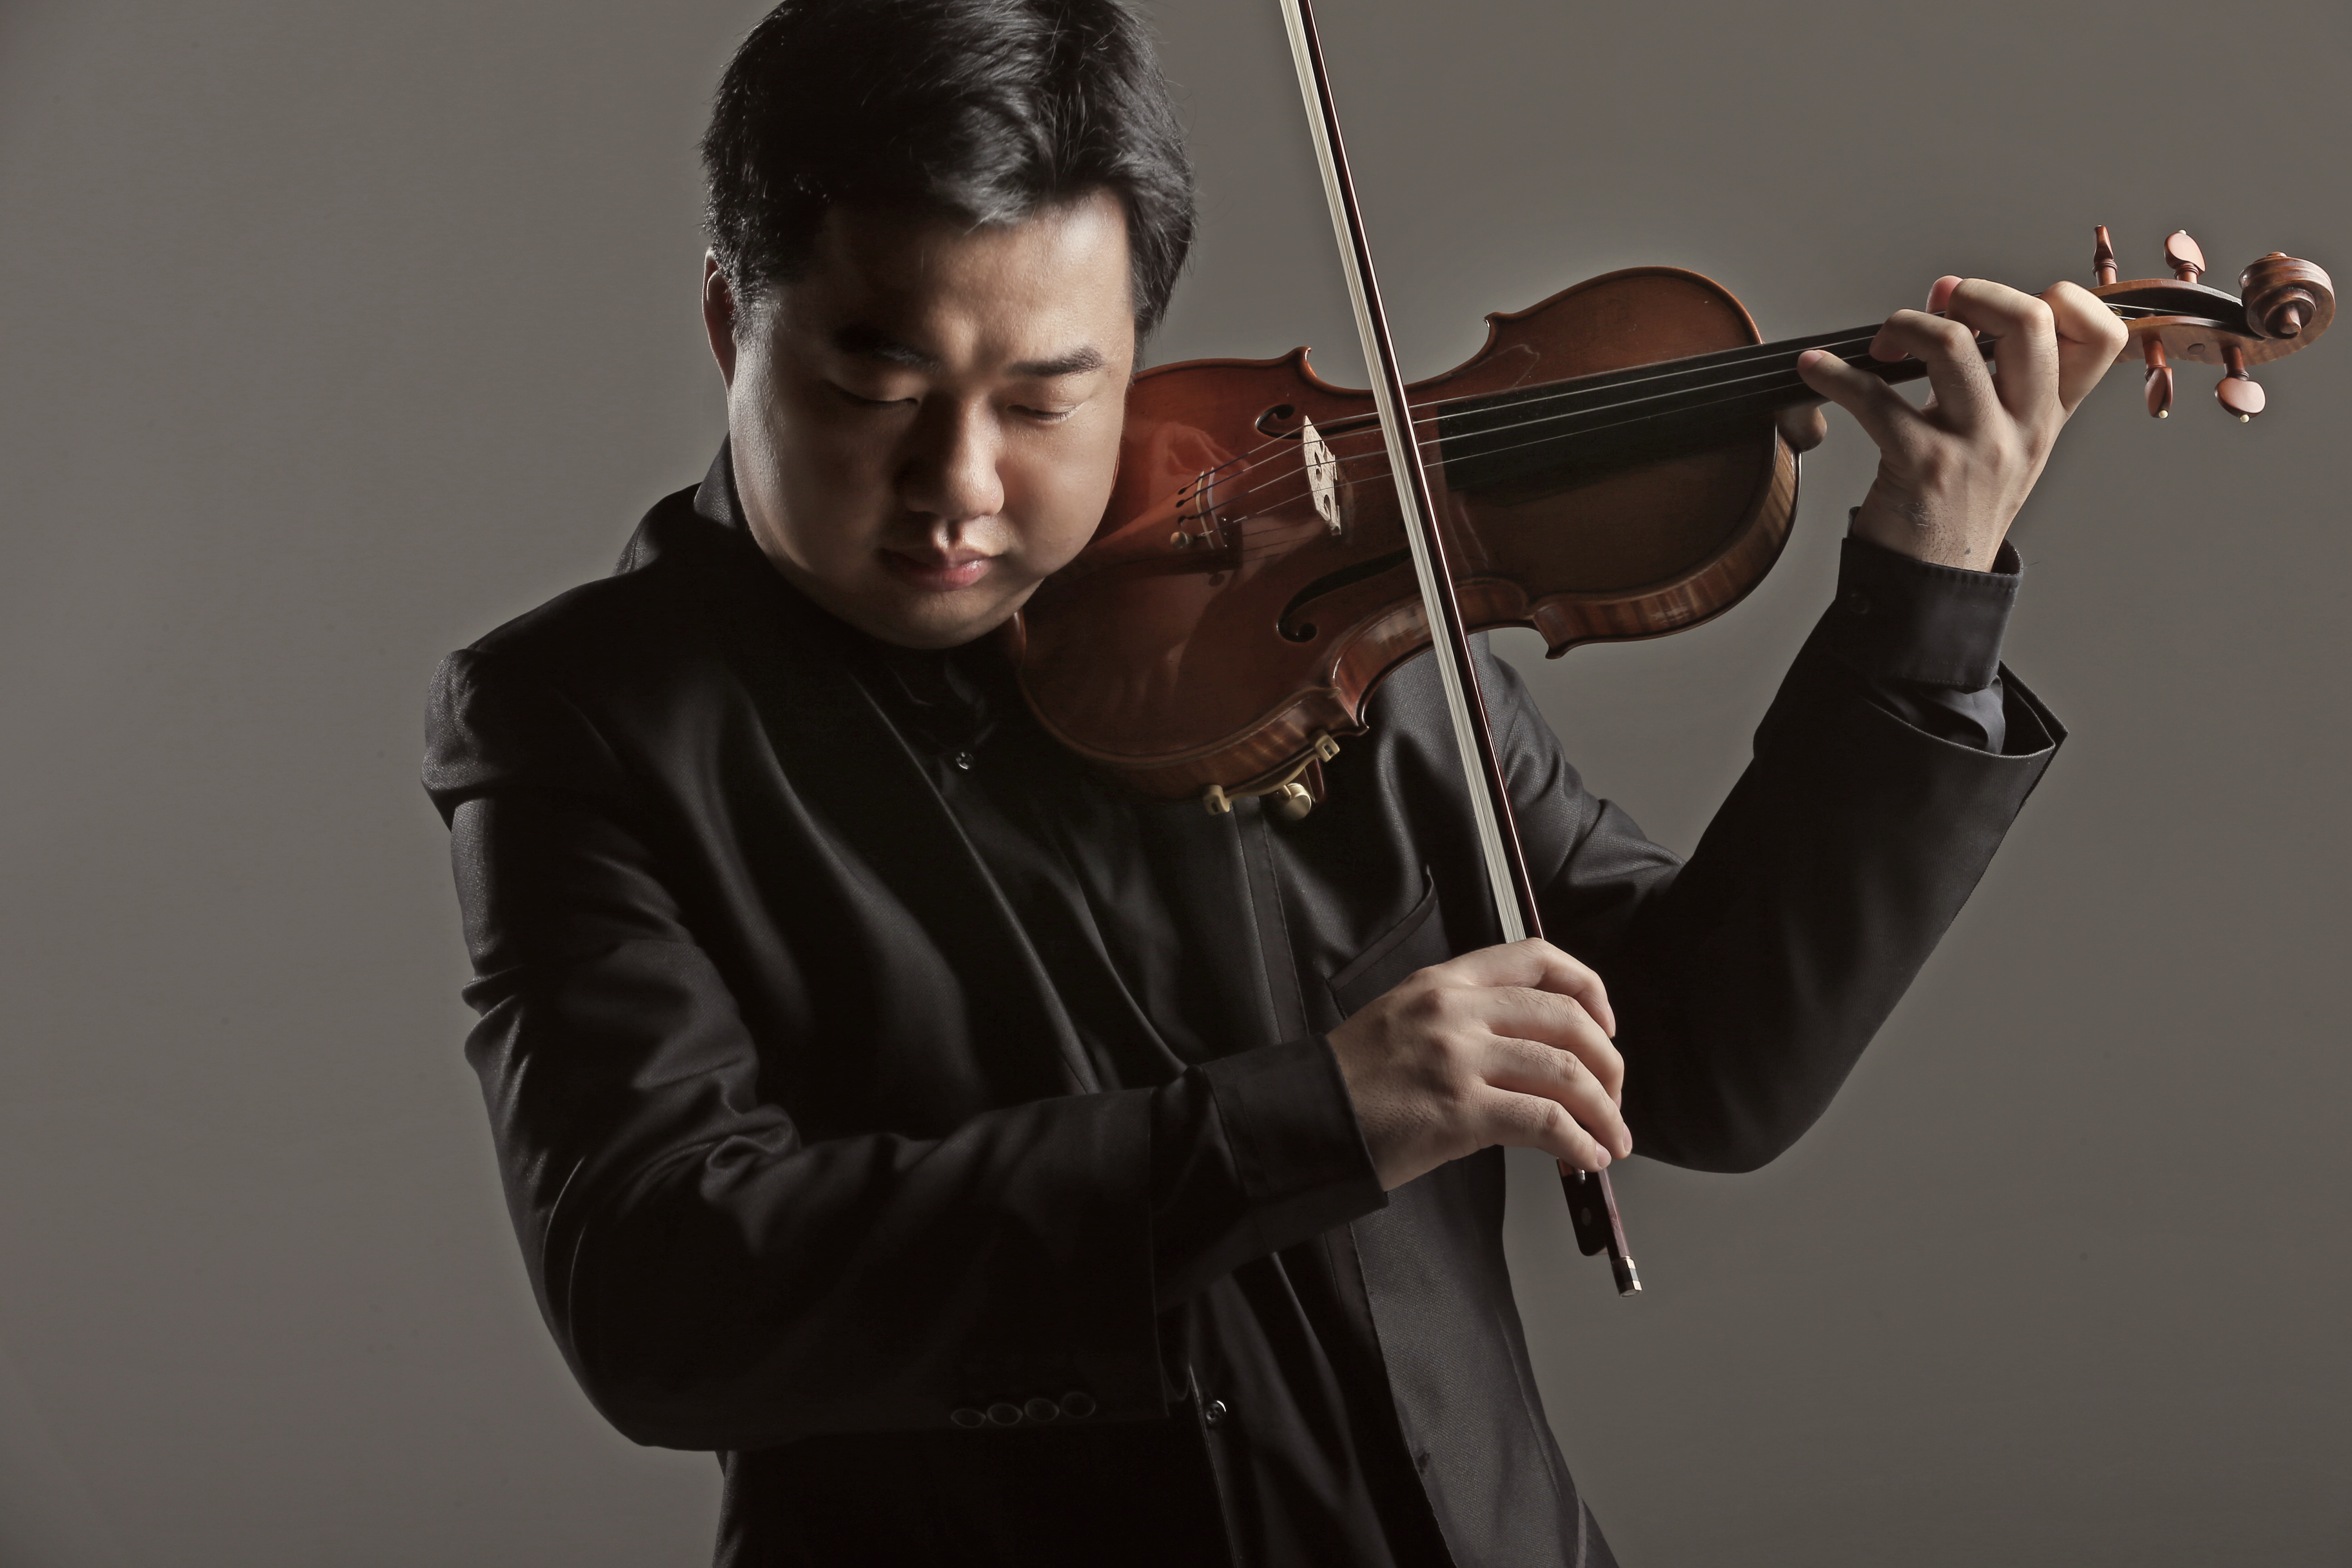 Internationally-acclaimed violinst Ning Feng, photographed by Lawrence Tsang